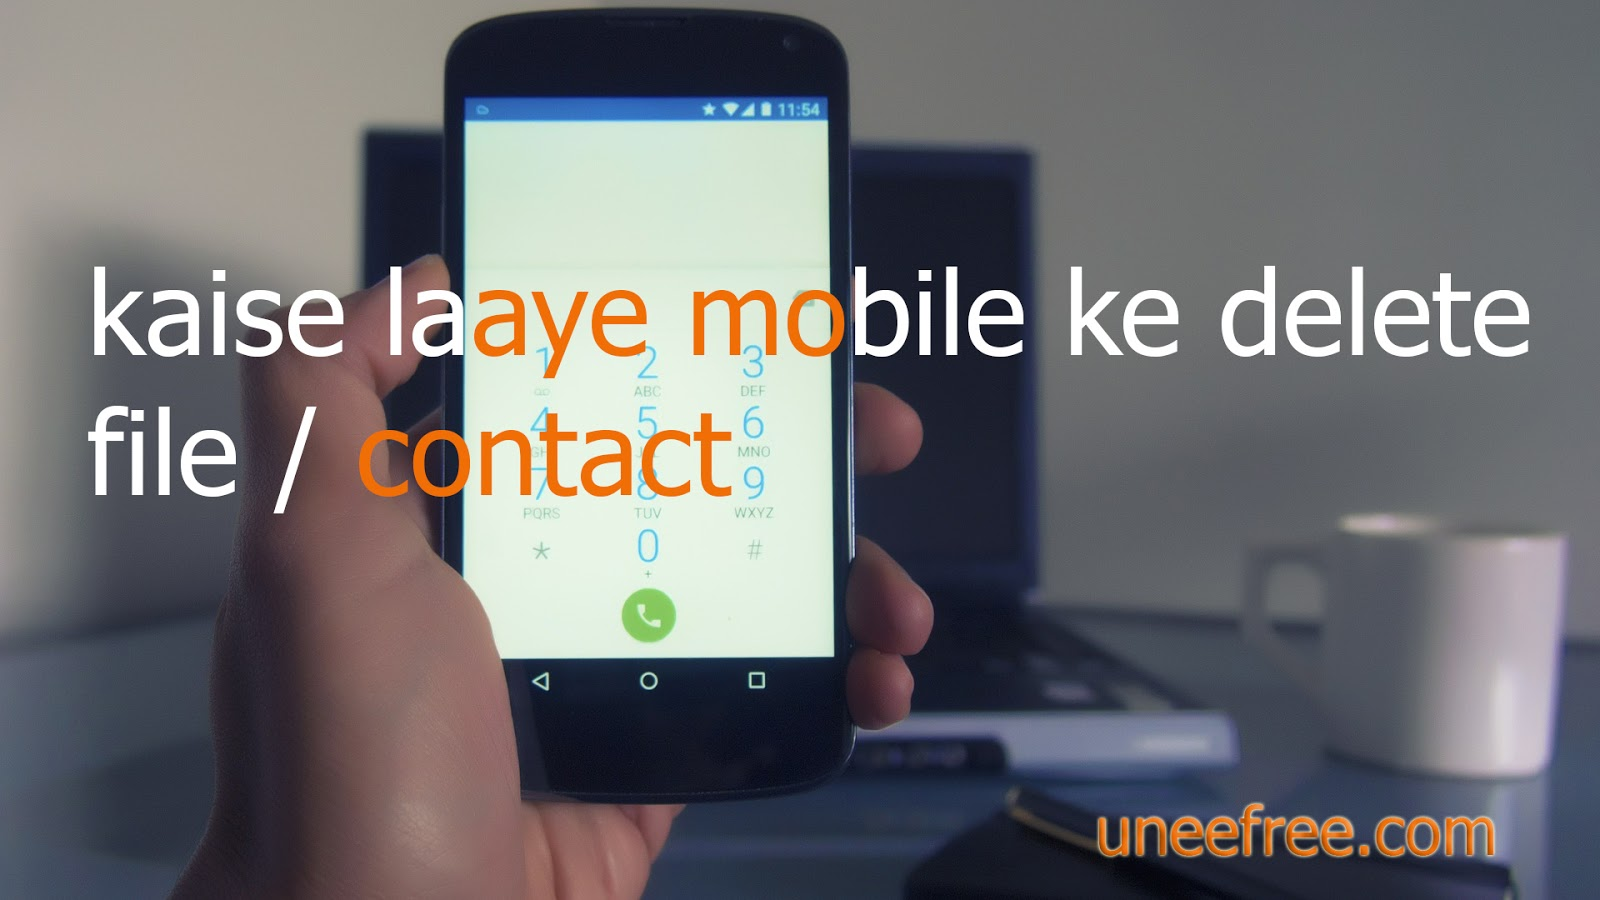 Phone How To Delete Contacts From An Android Phone kaise laaye mobile ke delete contact wapas uneefree com agar apka android hai to aap sabse pahle google play store me jakar data recovery download kr lijiye ache waale jiske liye apko ki